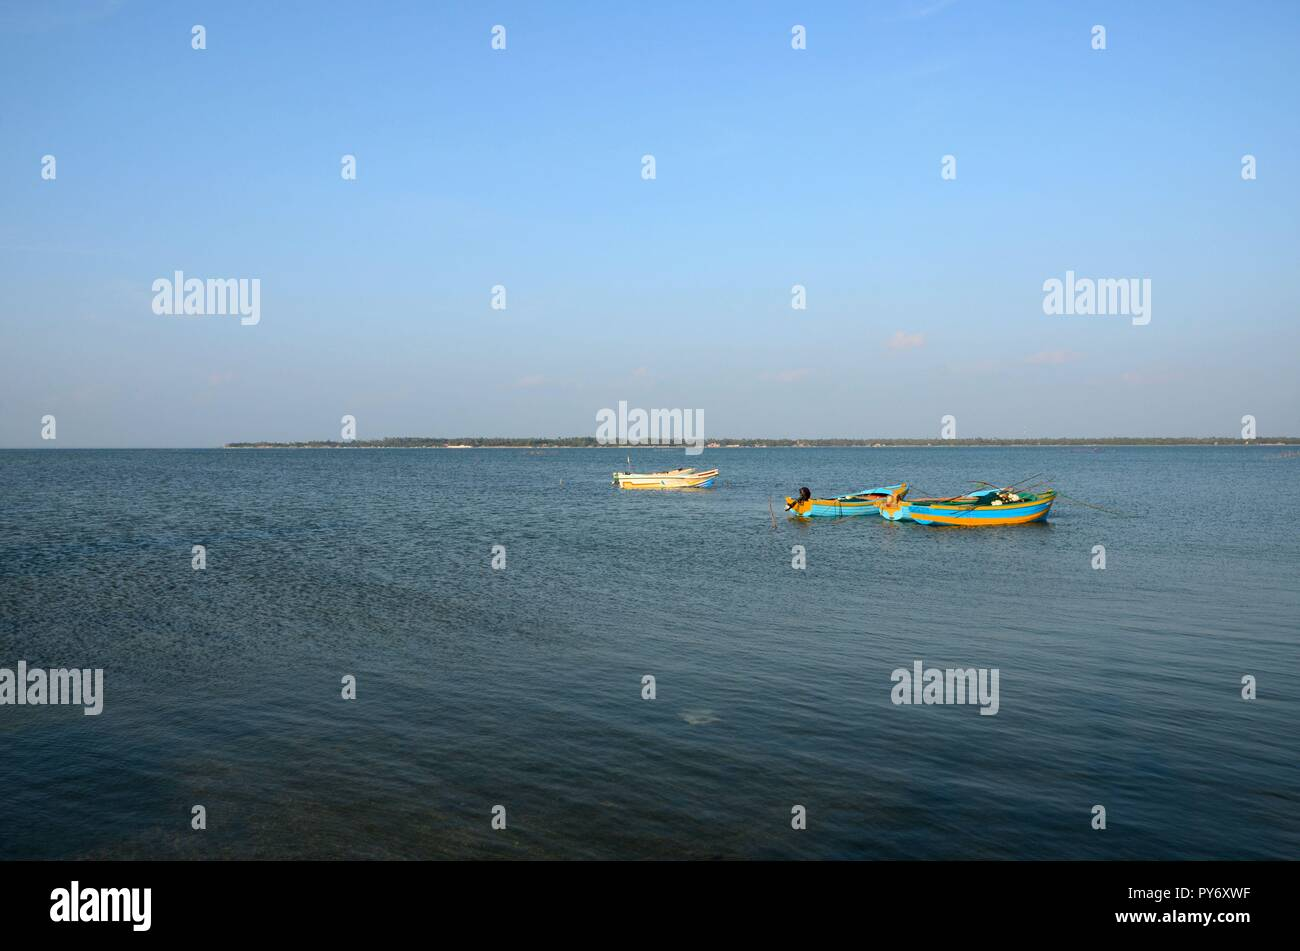 Several blue and yellow boats moored anchored in waters of Jaffna Sri Lanka Stock Photo